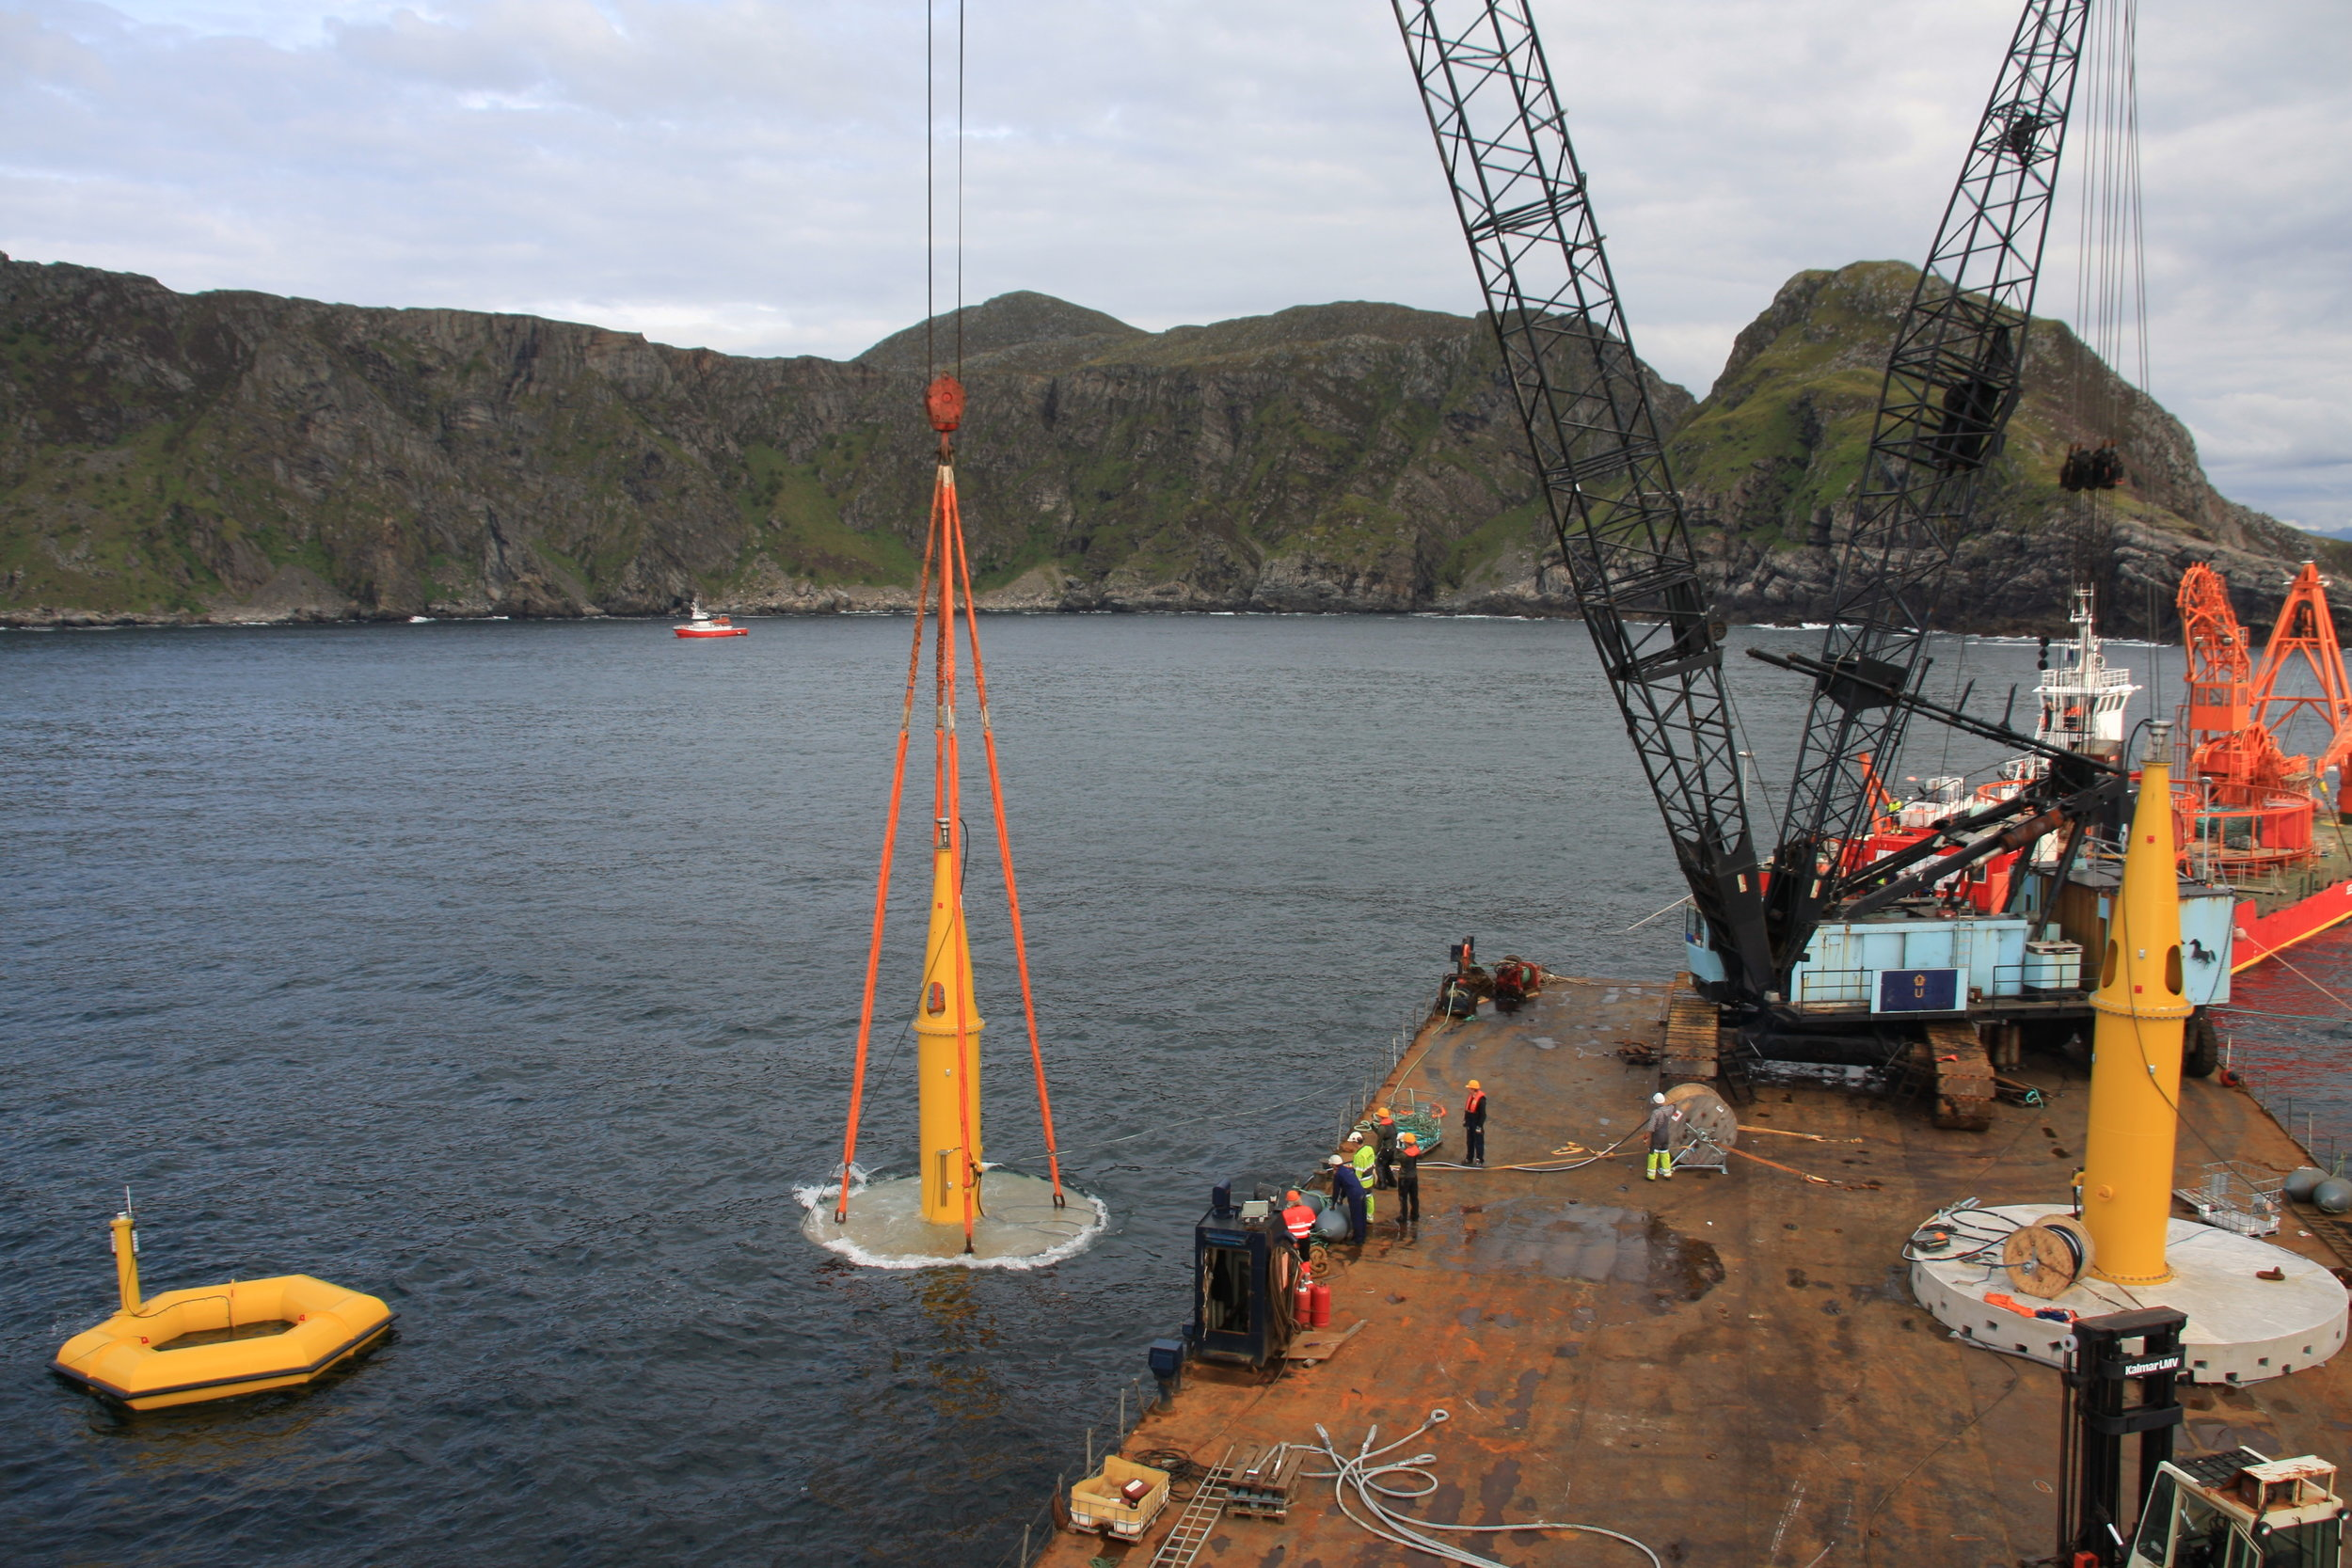 The Maren Project in Runde, Norway - The power company Vattenfall contracted Seabased to provide two full scale wave energy converters, a marine substation and a sub-sea cable (2.7 km) connecting the generators to the 22-kV grid for the MAREN project in Runde, Norway. The total installed capacity was 0.3 MW.